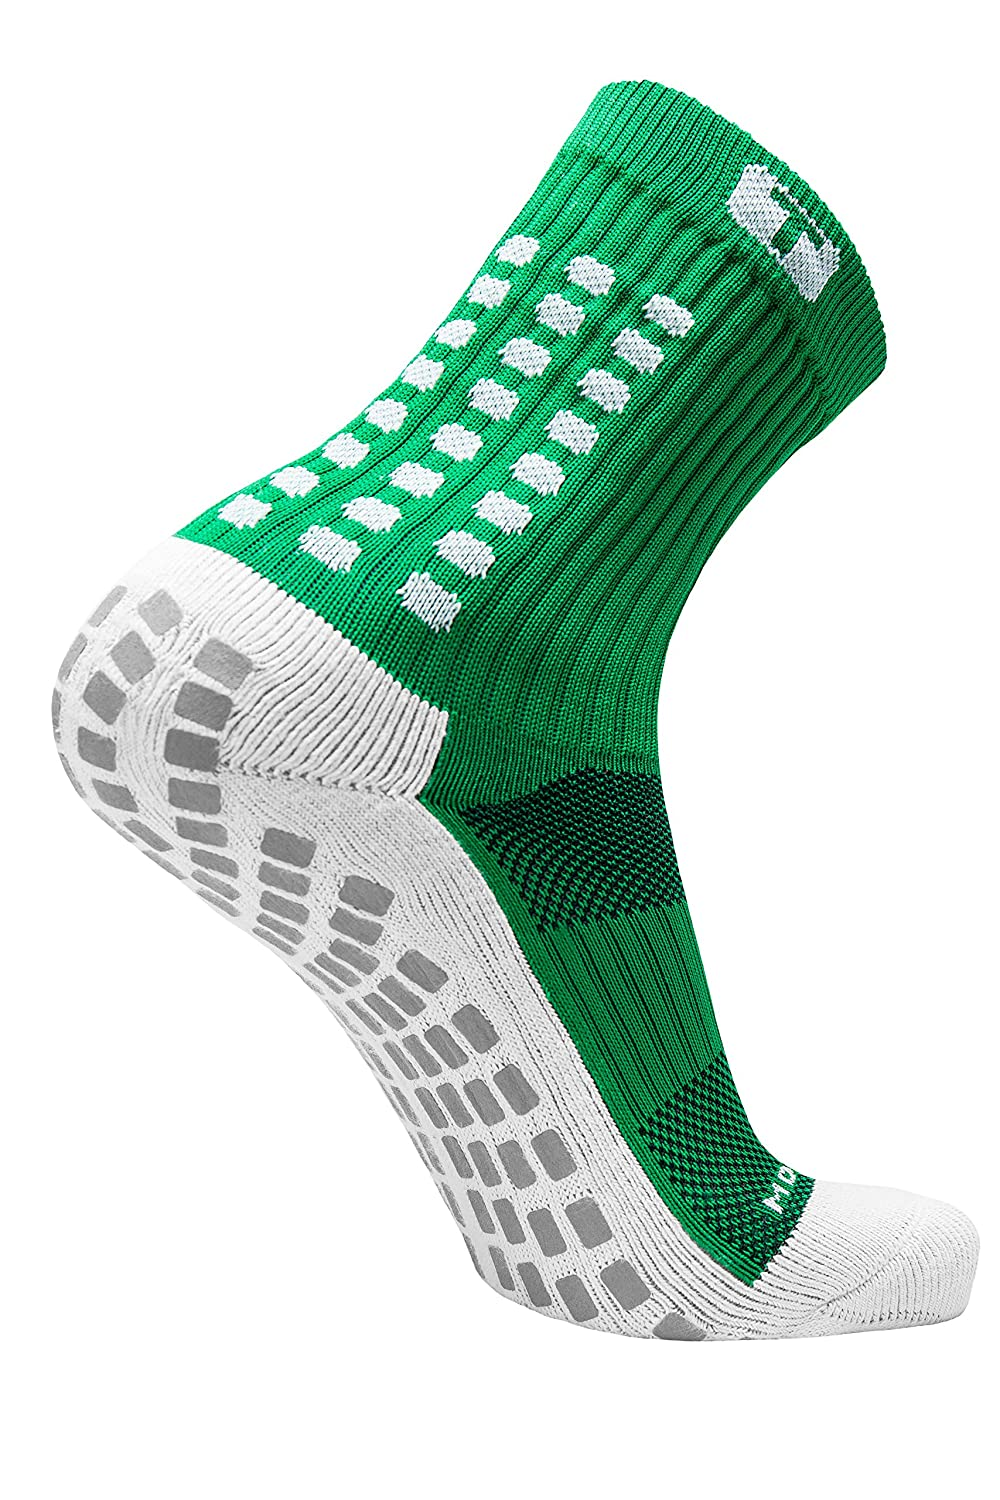 TRUSOX Mid-Calf Crew Cushion Soccer | Football Socks (Pair) with Anti Slip Pads To Reduce Blisters, for Men and Women, Black, Small, Shoe Size US(M ...